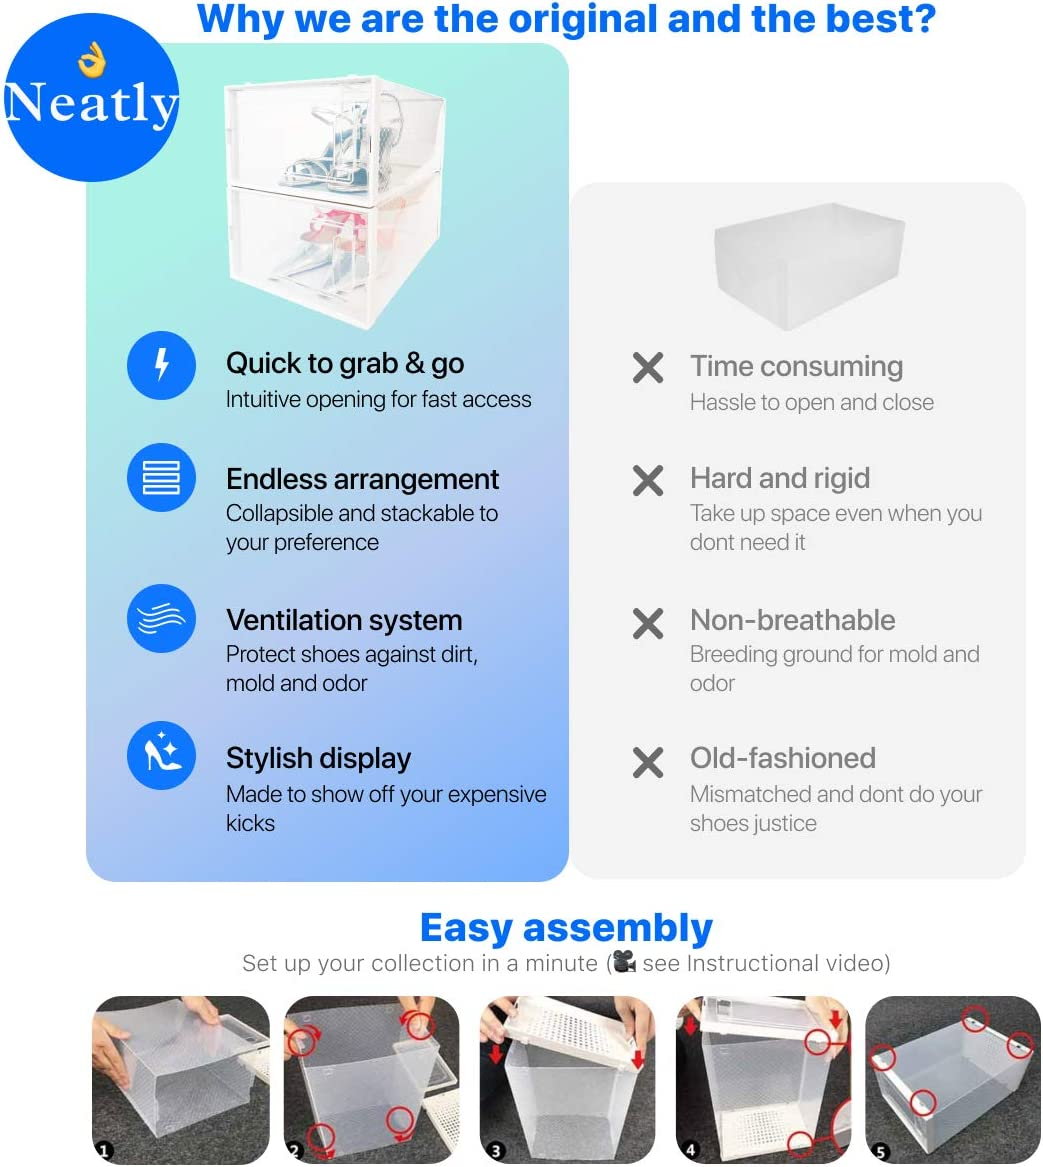 women shoes sneakers Stackable Shoe Racks for closets and entryway Shoe Storage cabinet Clear plastic shoe boxes with lids 12 COLLAPSIBLE Cube Storage bins for mens shoes NEATLY Shoe Organizer